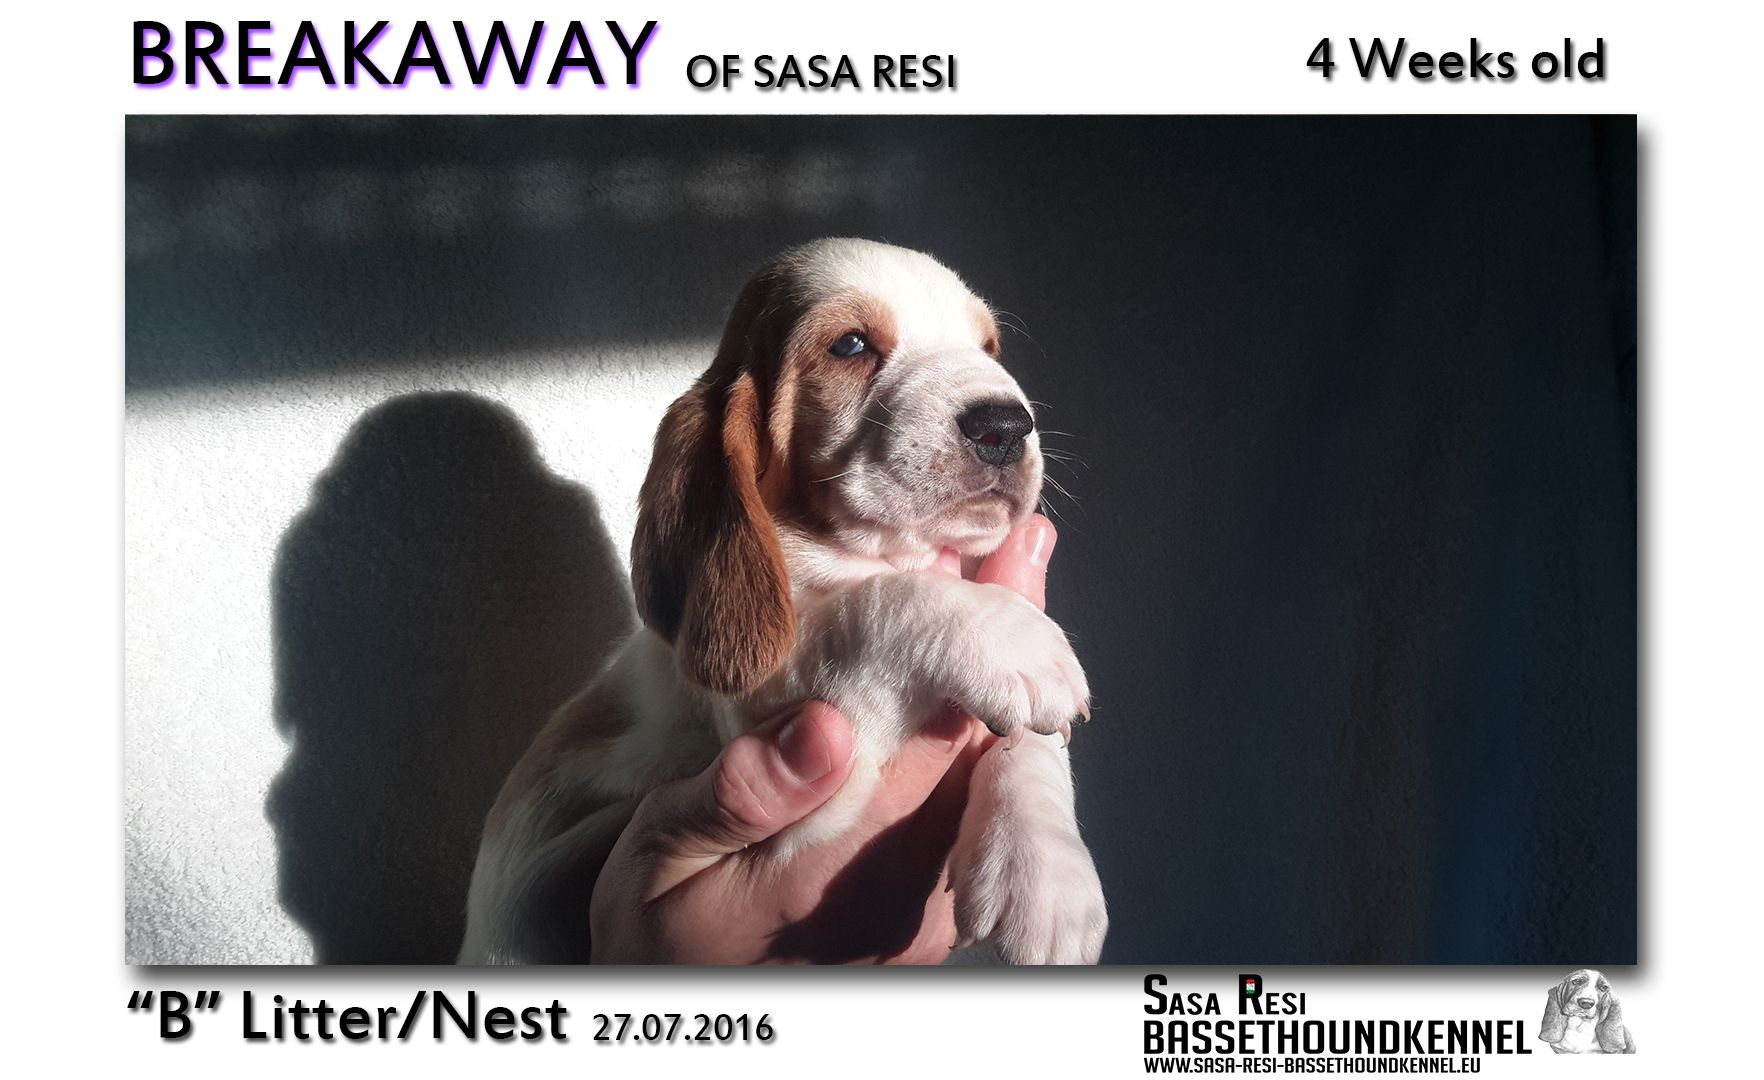 1 compressed 6 SaSa ReSi Bassethoundkennel